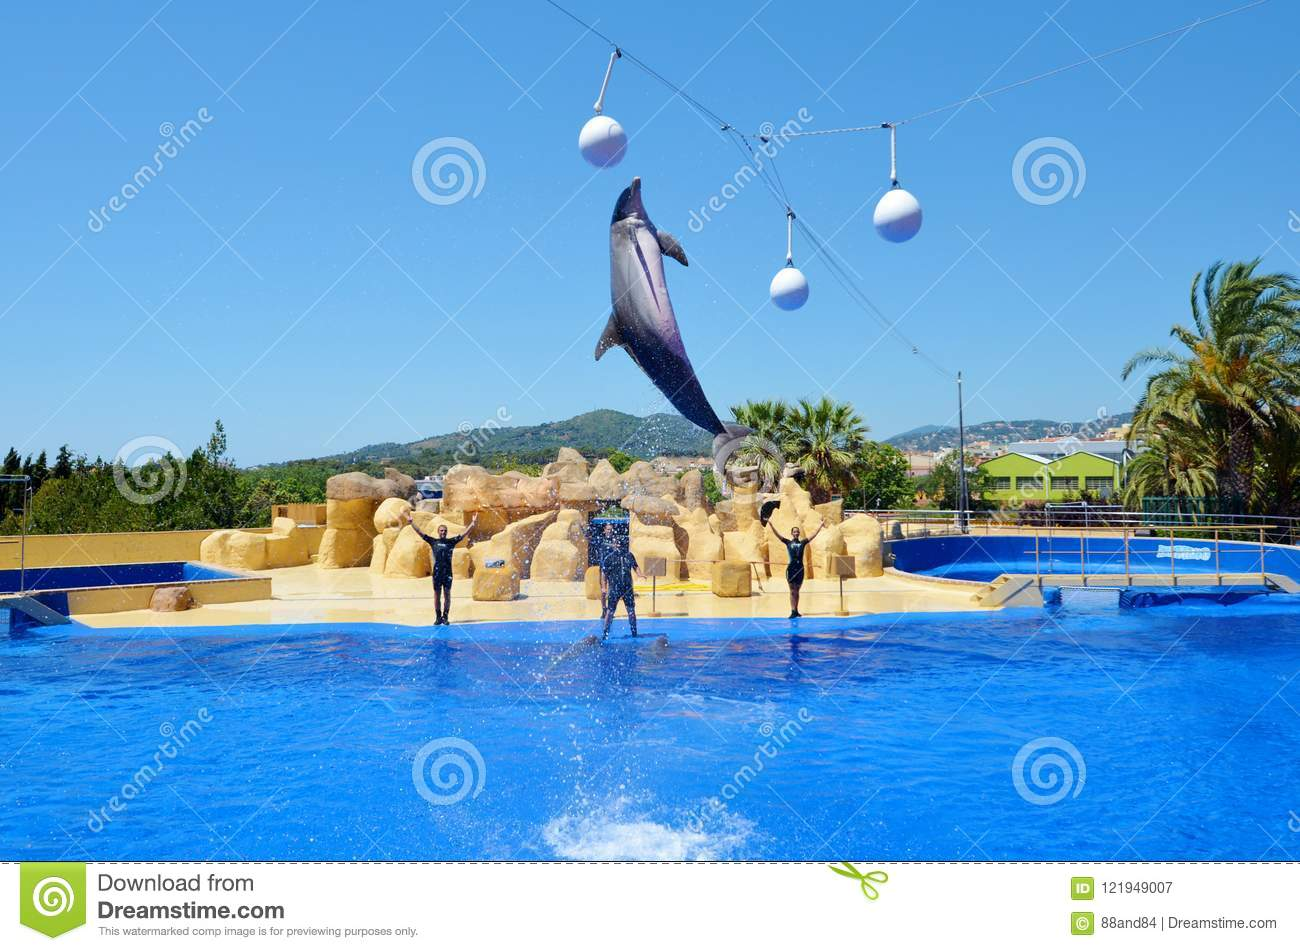 Jumping dolphins at Dolphin Show in a Zoo